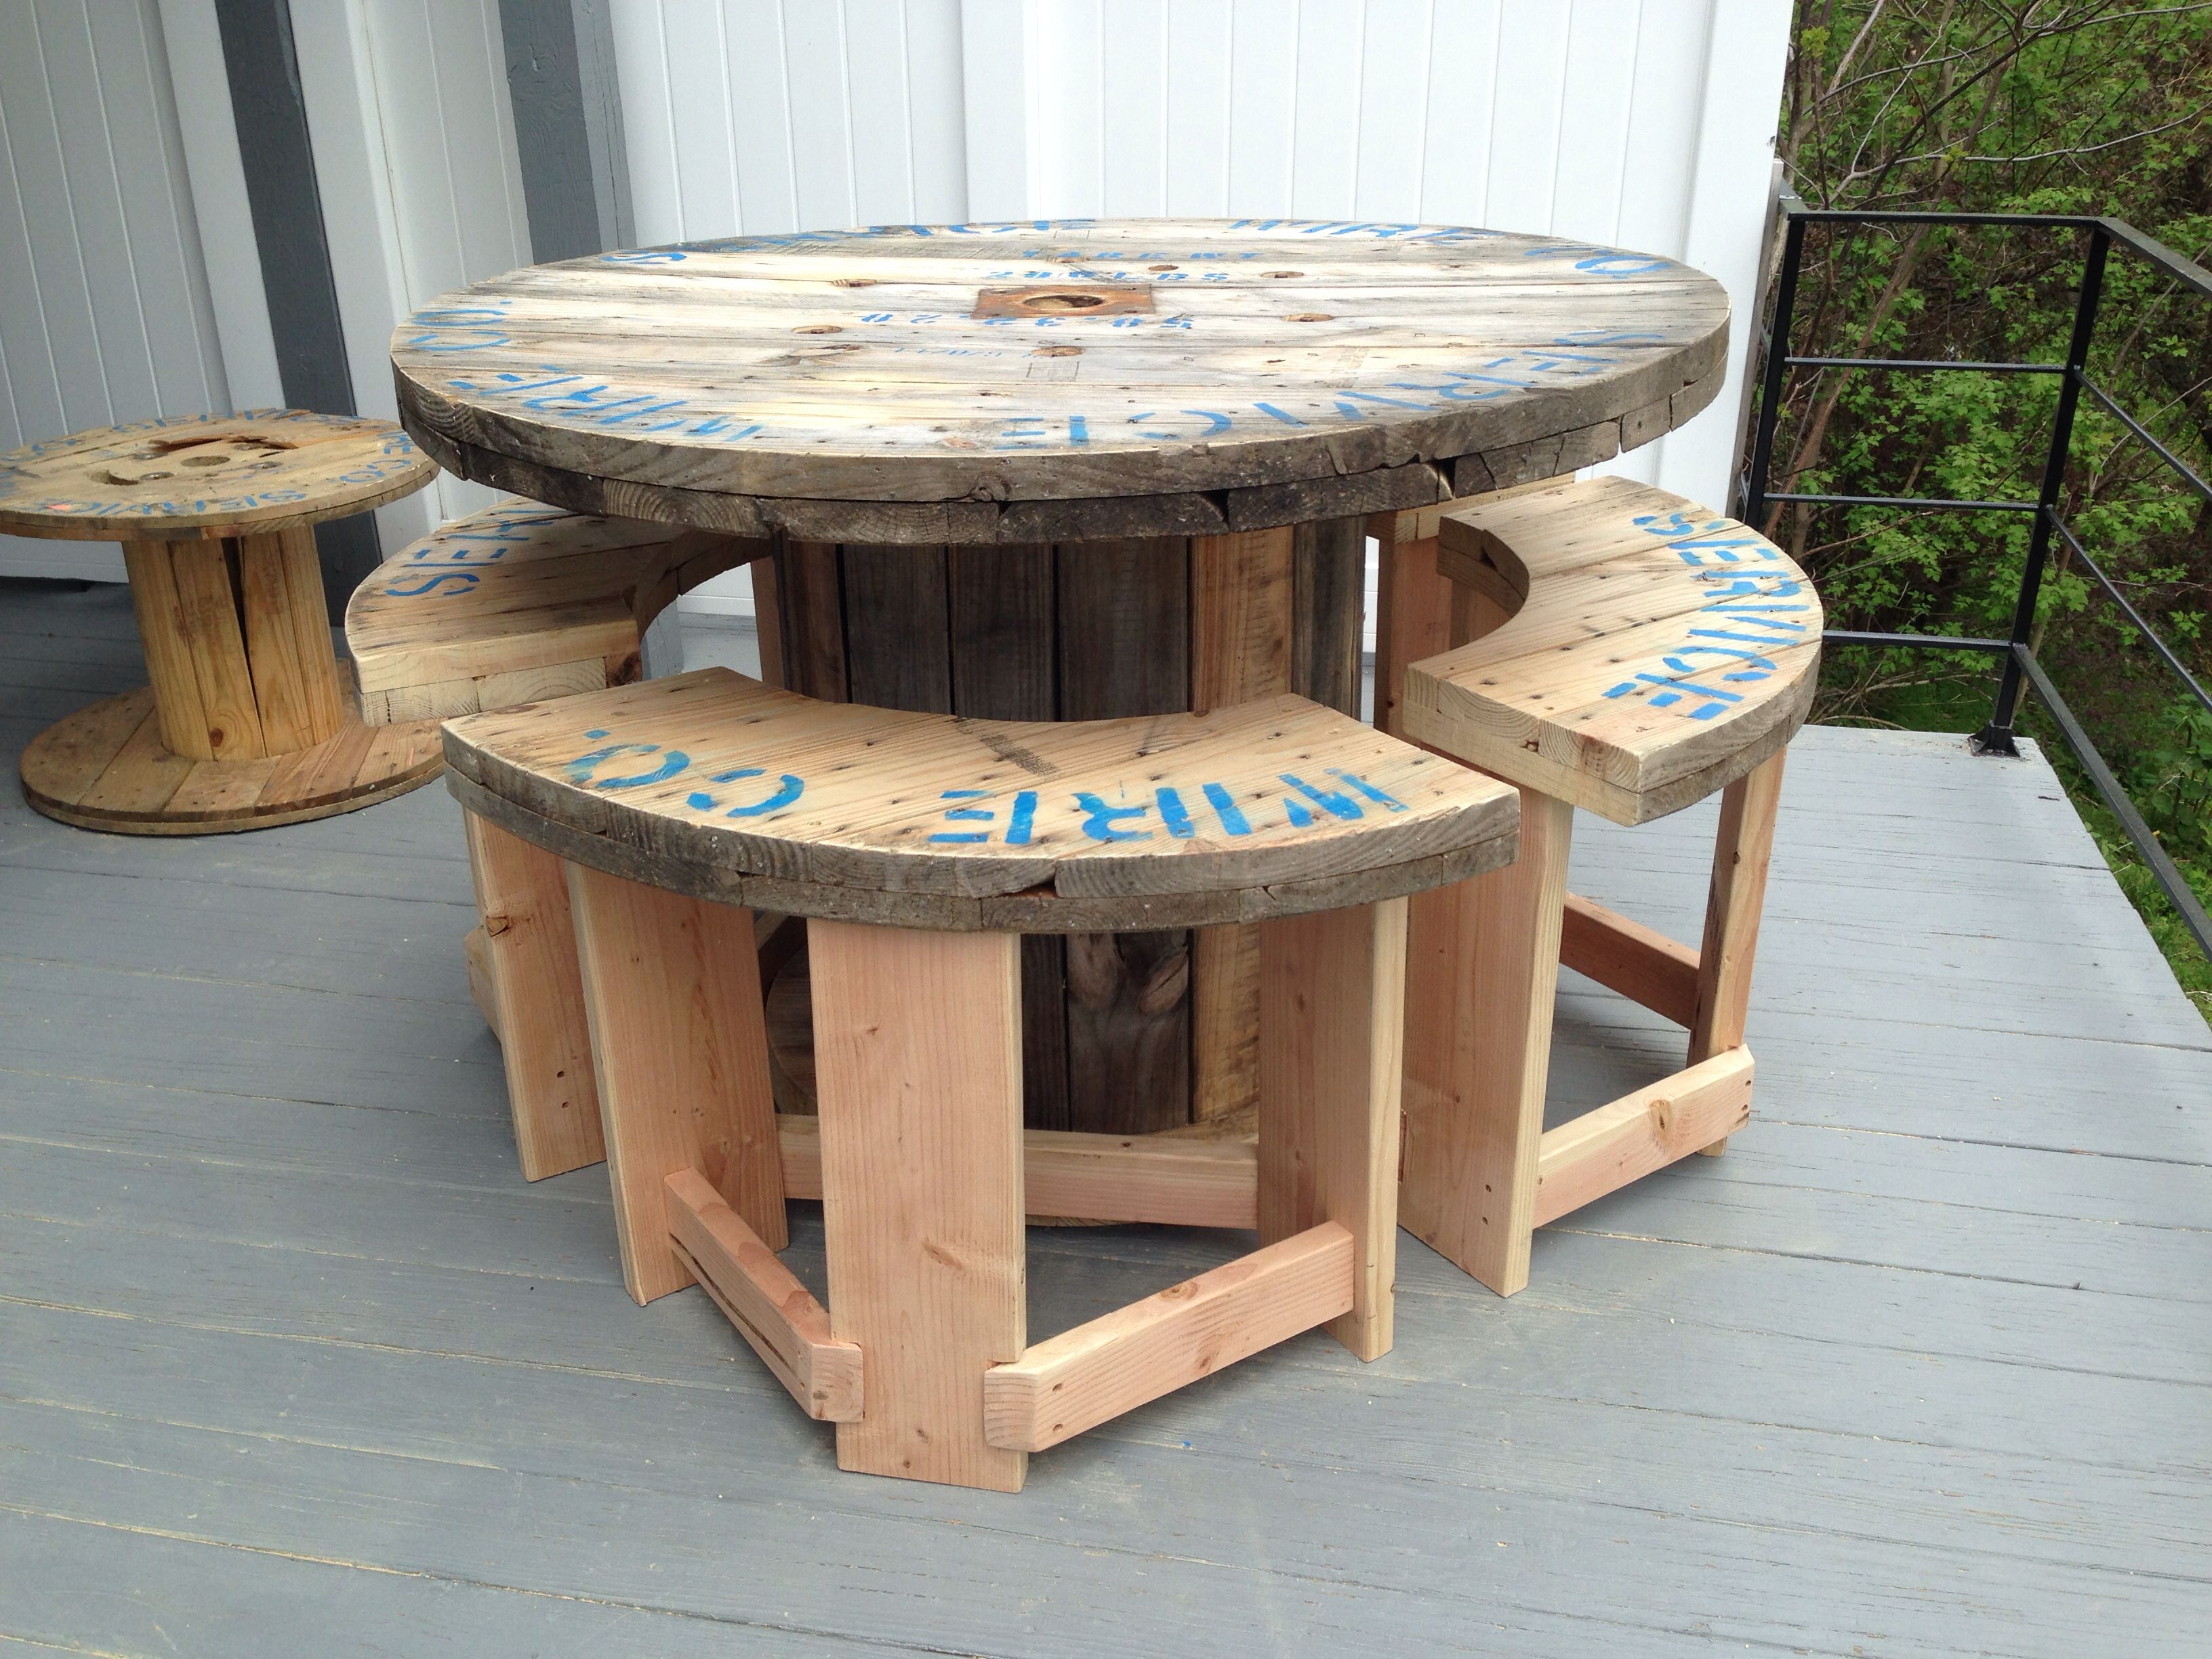 5 Wire Spool I Made Into A Bar Height Patio Table With 4 Stools